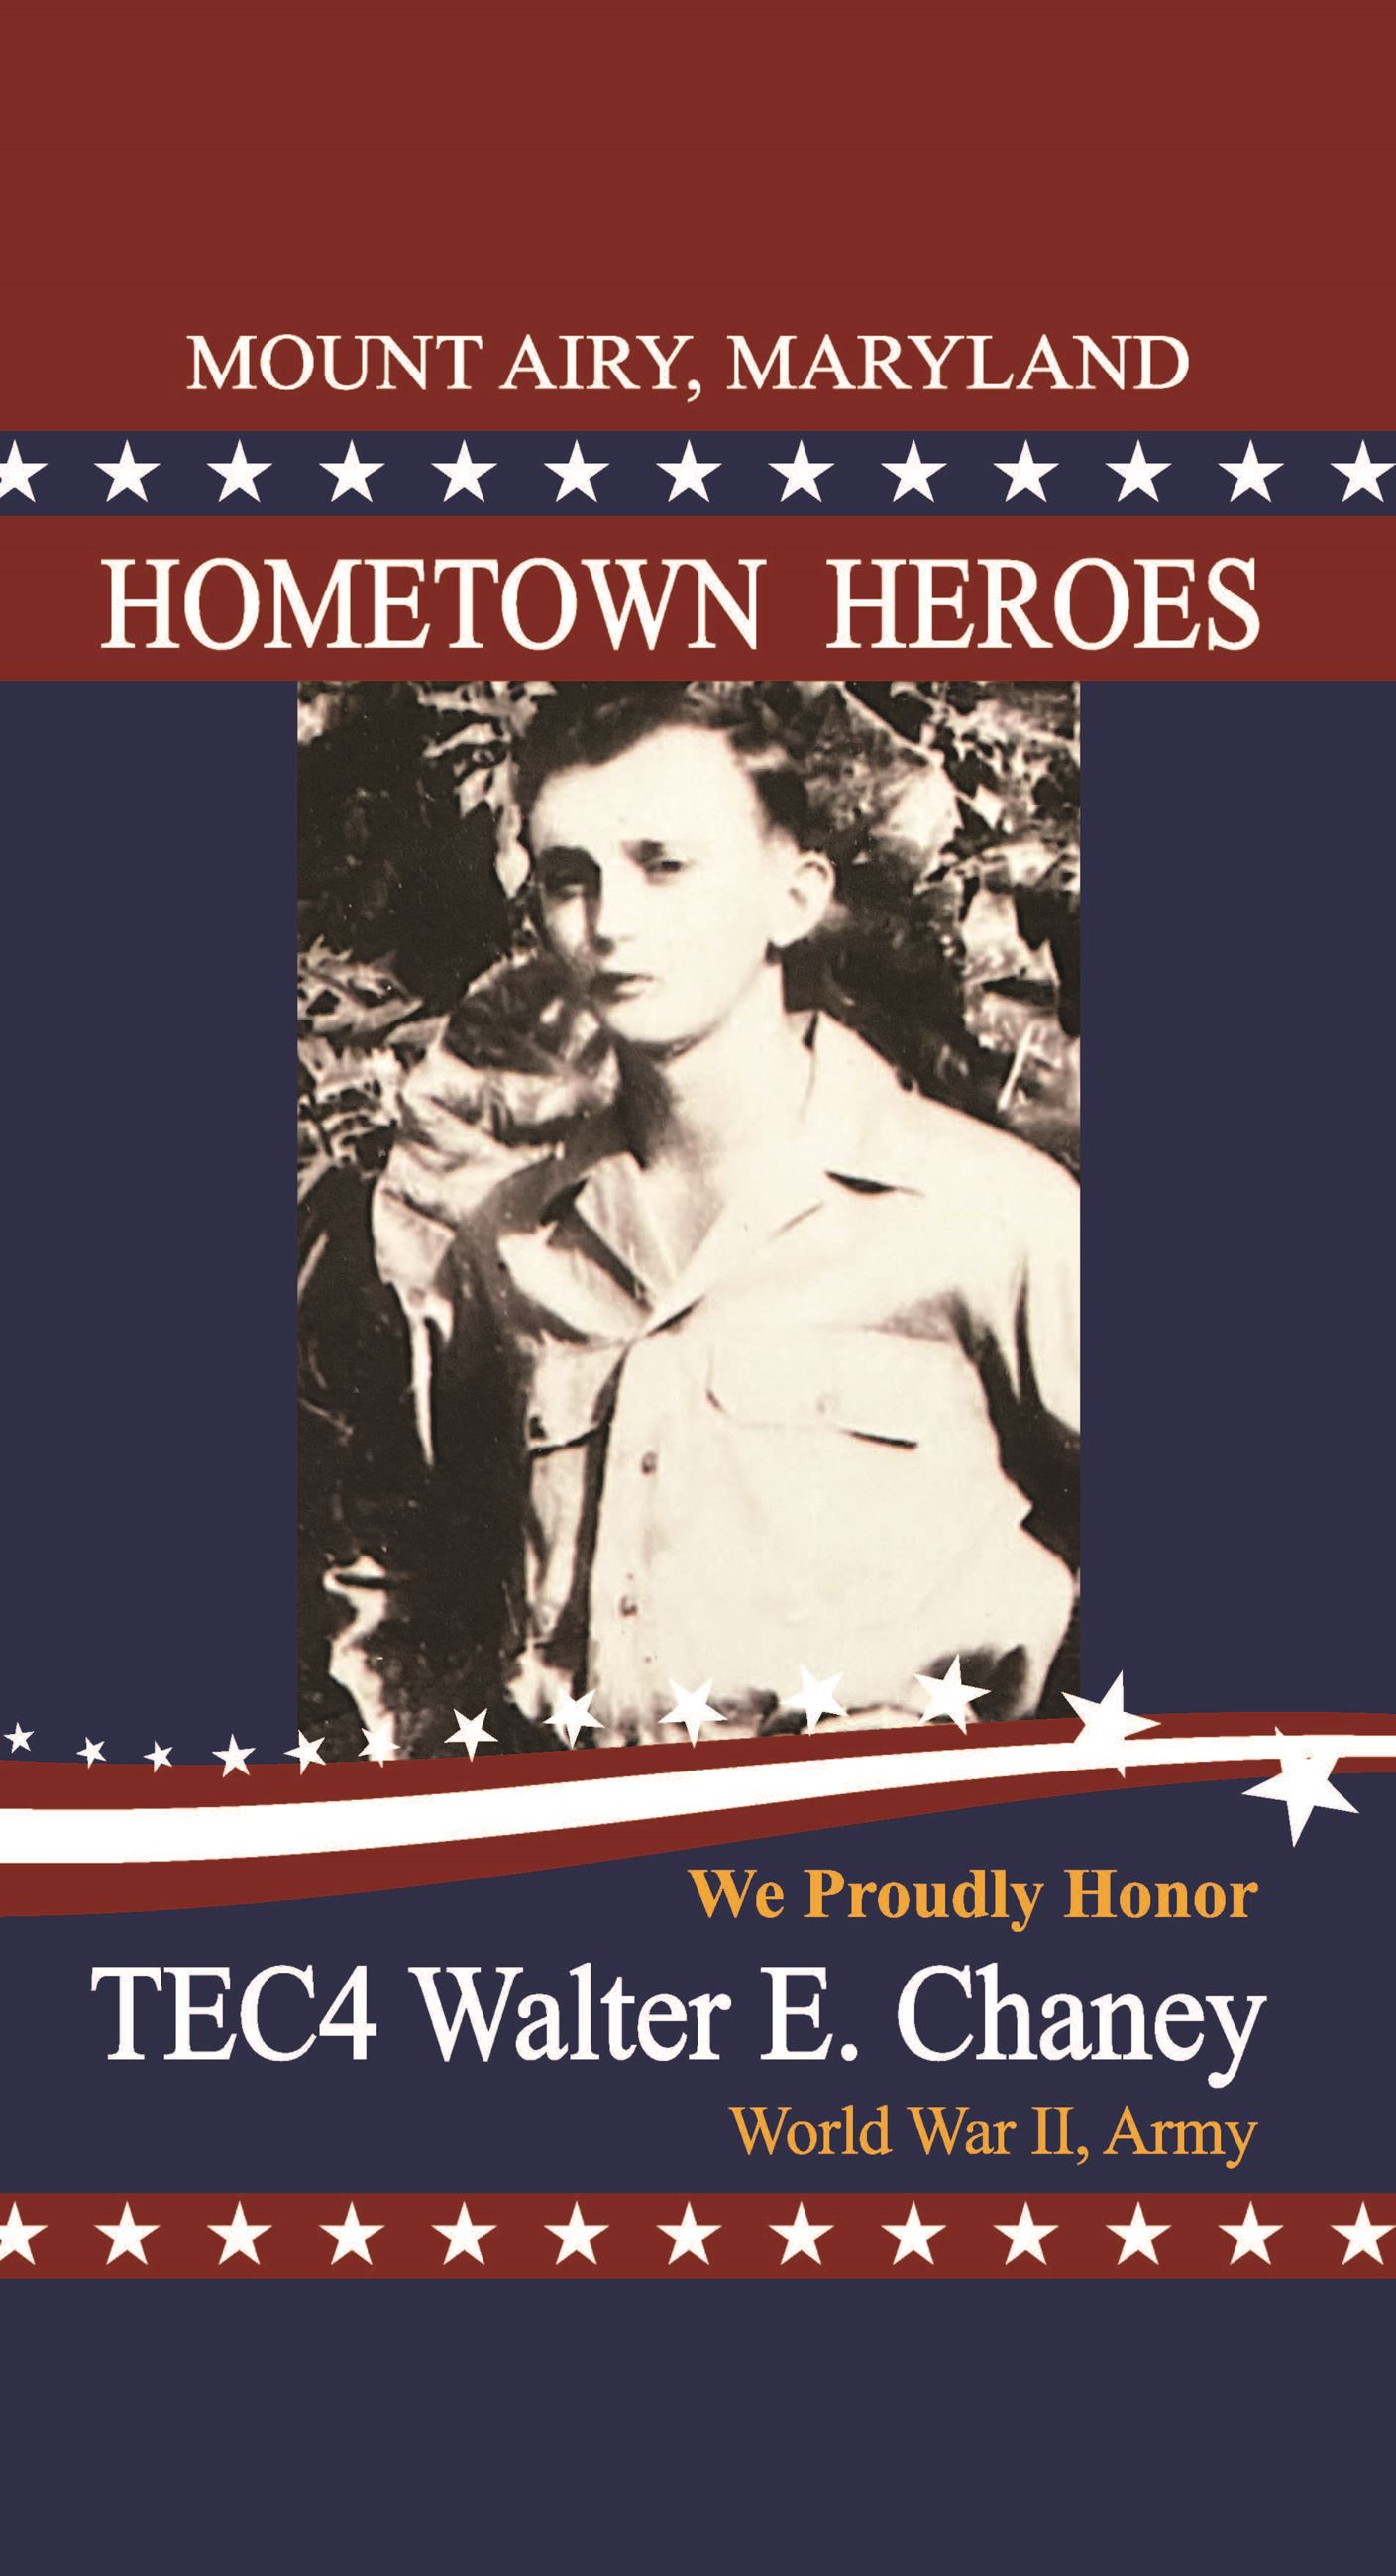 WalterEChaney_MtAiryHeroes-Flag-24x44-Proof001